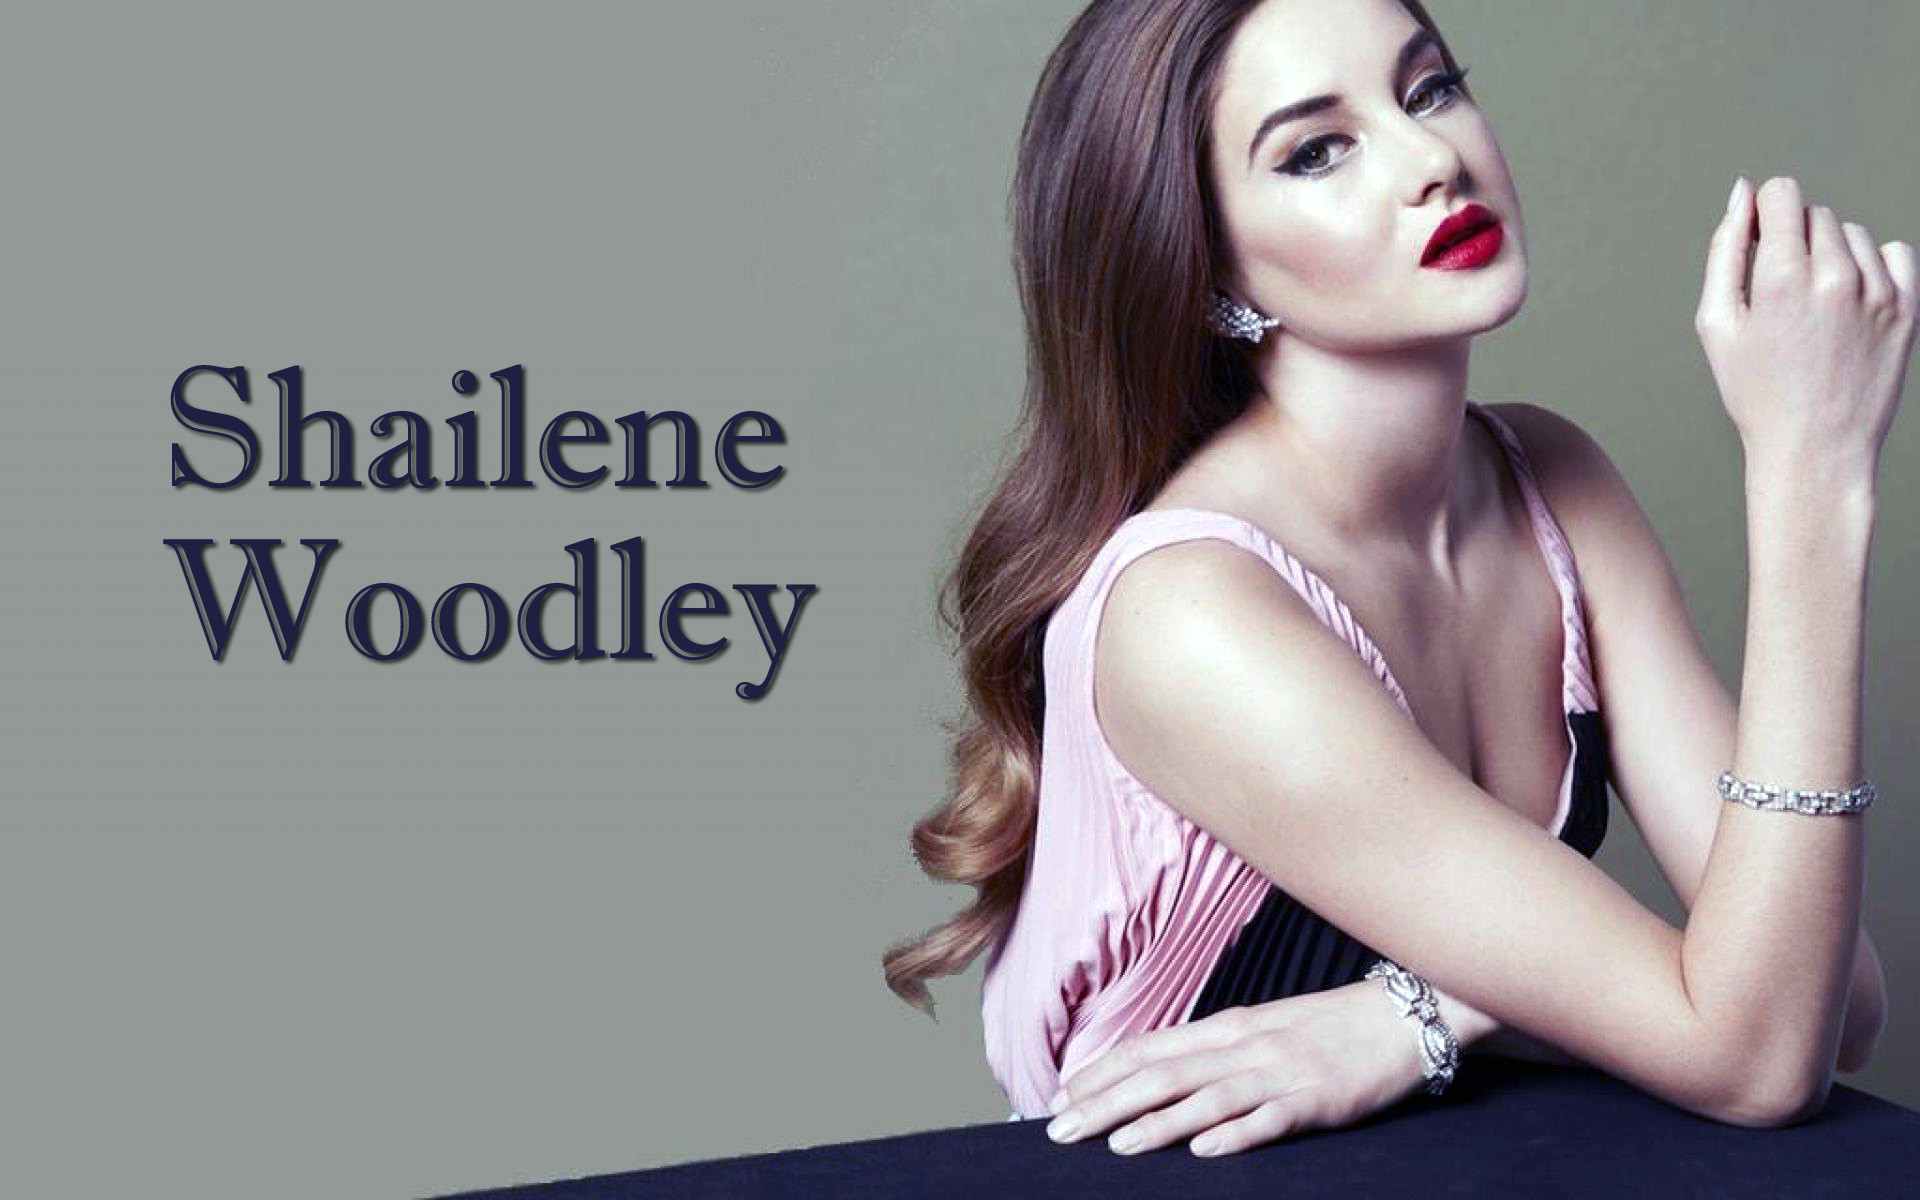 Shailene woodley wallpapers 67 pictures 1920x1200 shailene woodley 2014 hd wallpapers altavistaventures Images